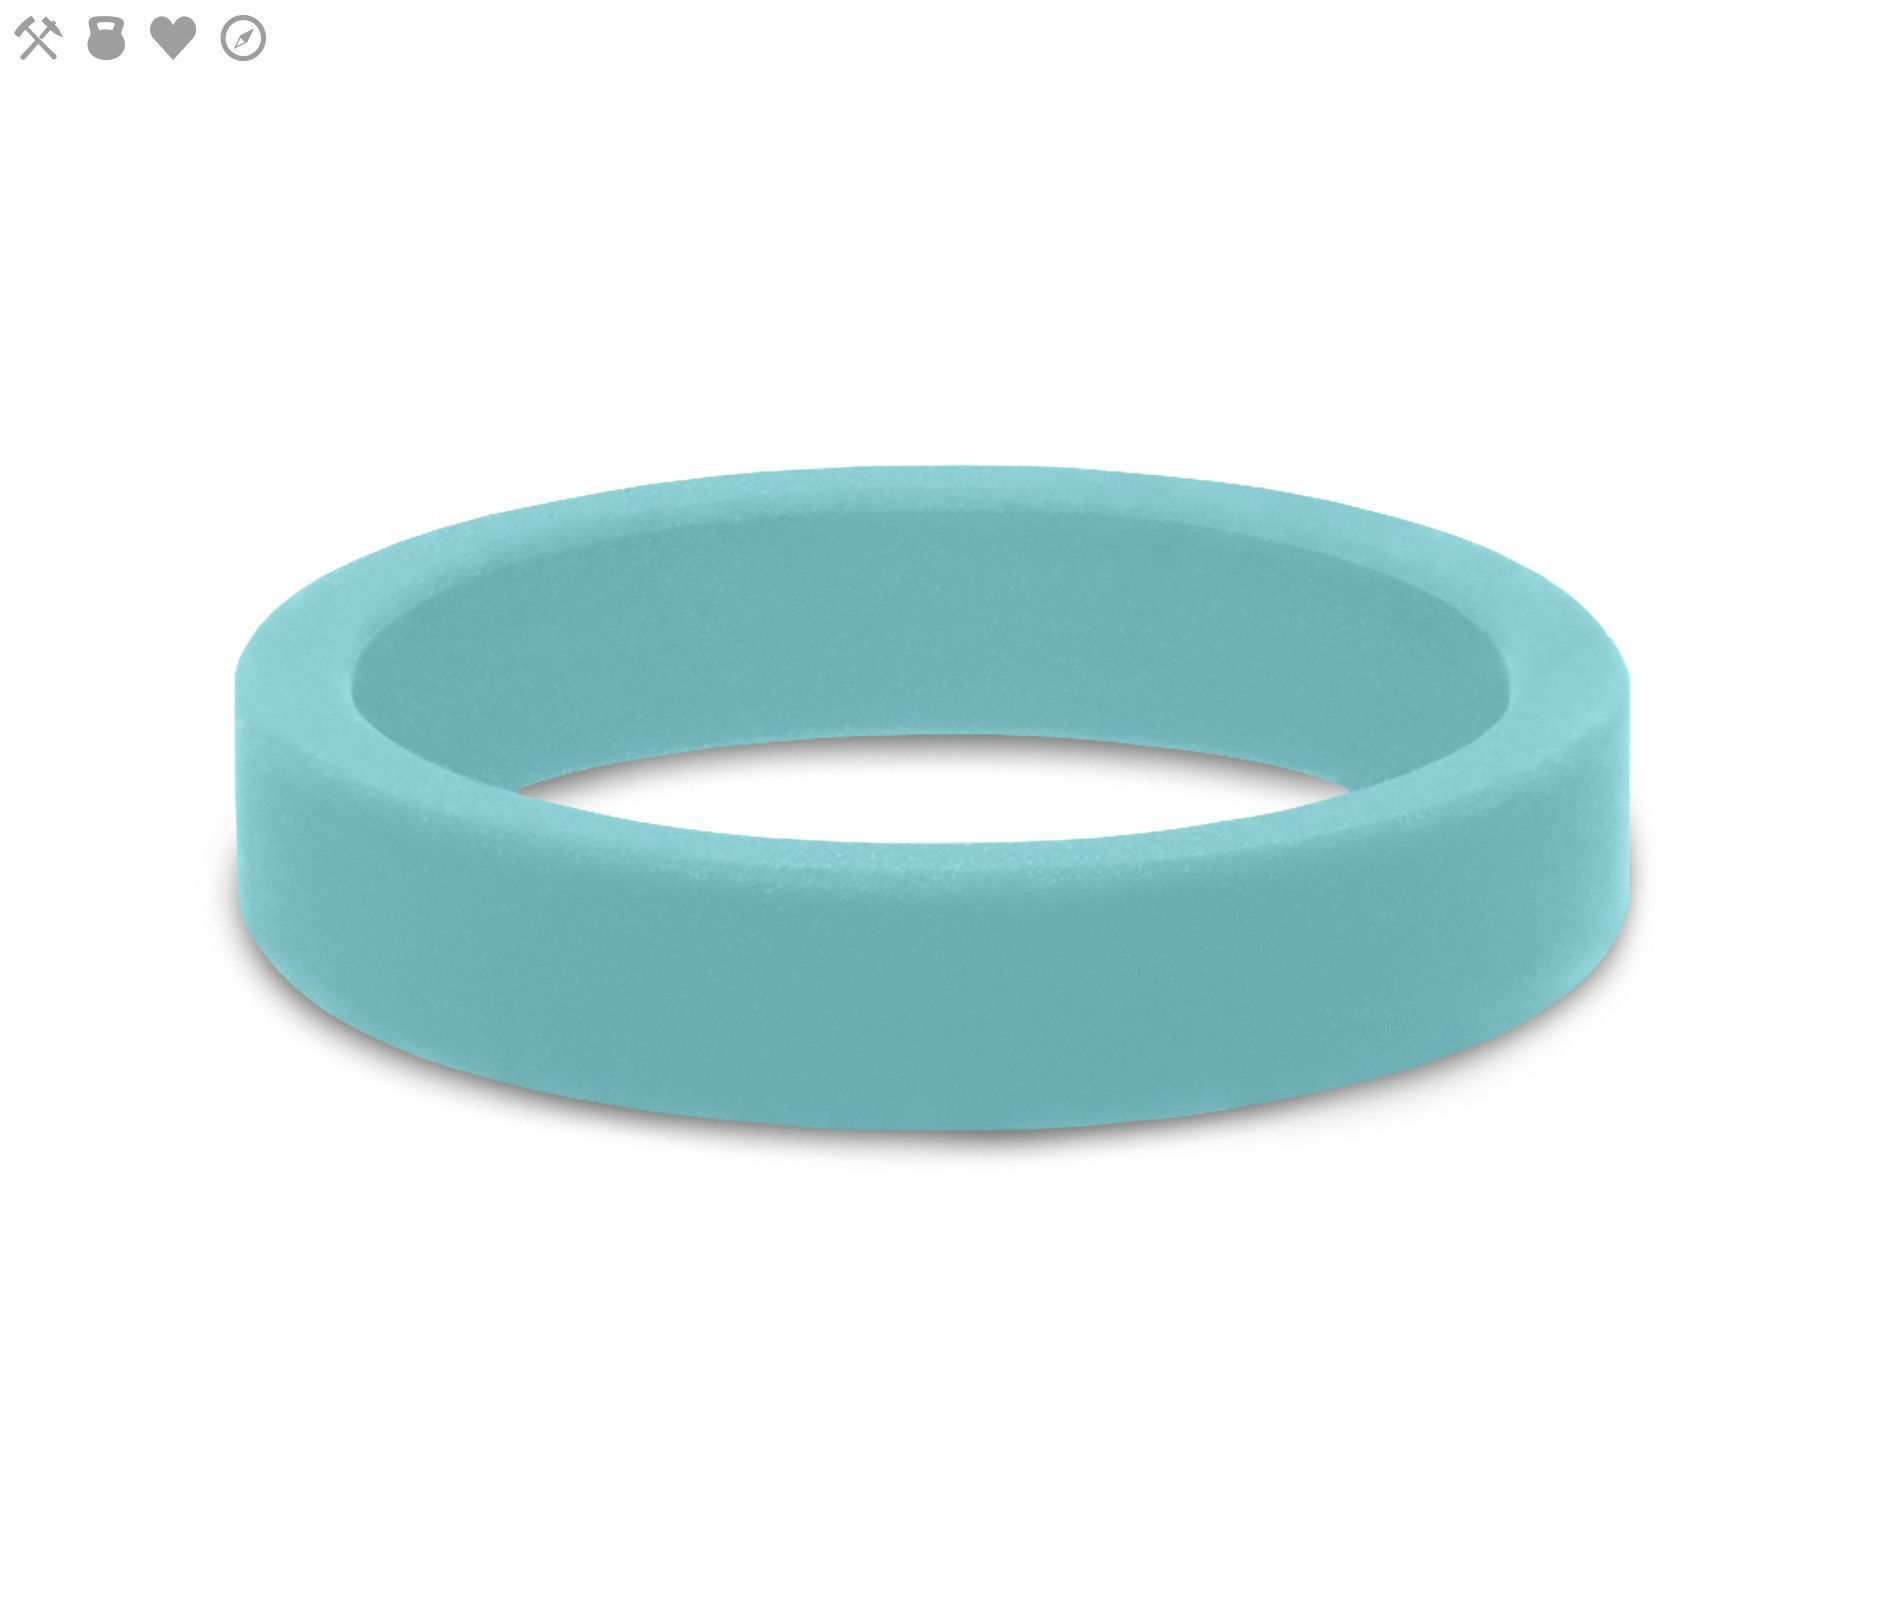 Womenus aquamarine smooth stackable silicone ring from qalo womens